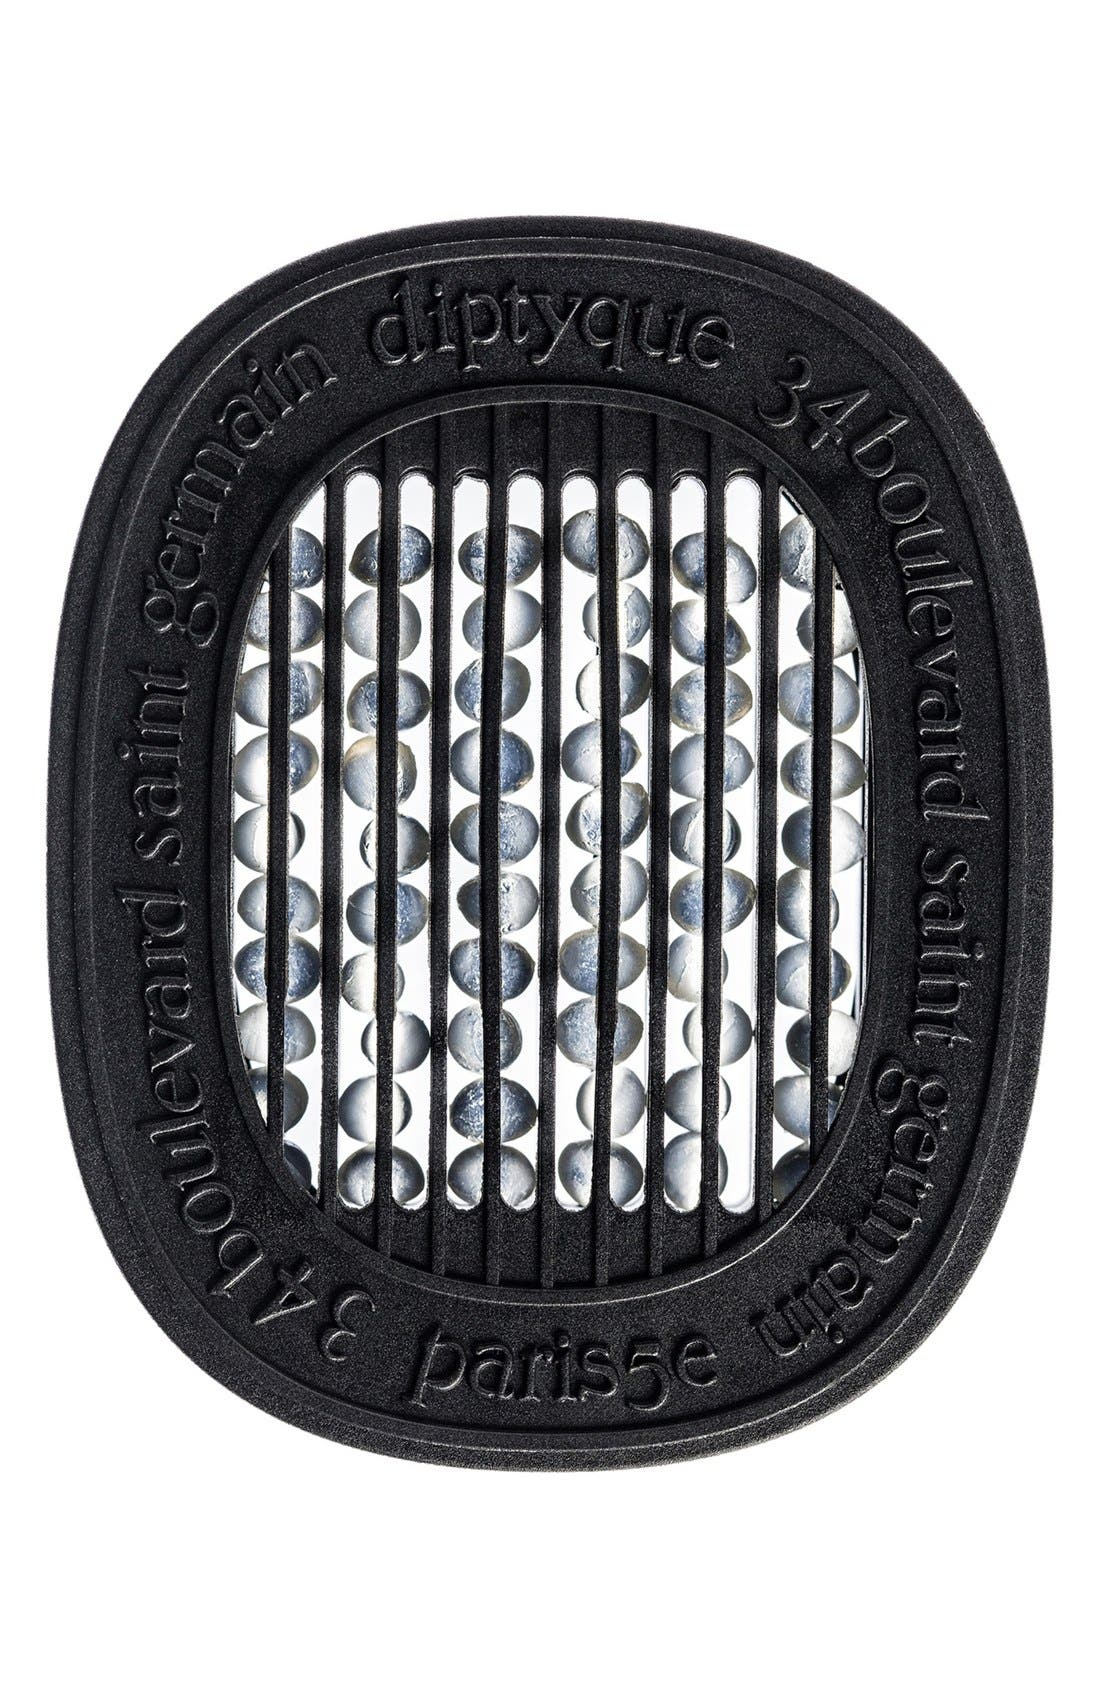 Main Image - diptyque 'Ginger' Electric Diffuser Cartridge